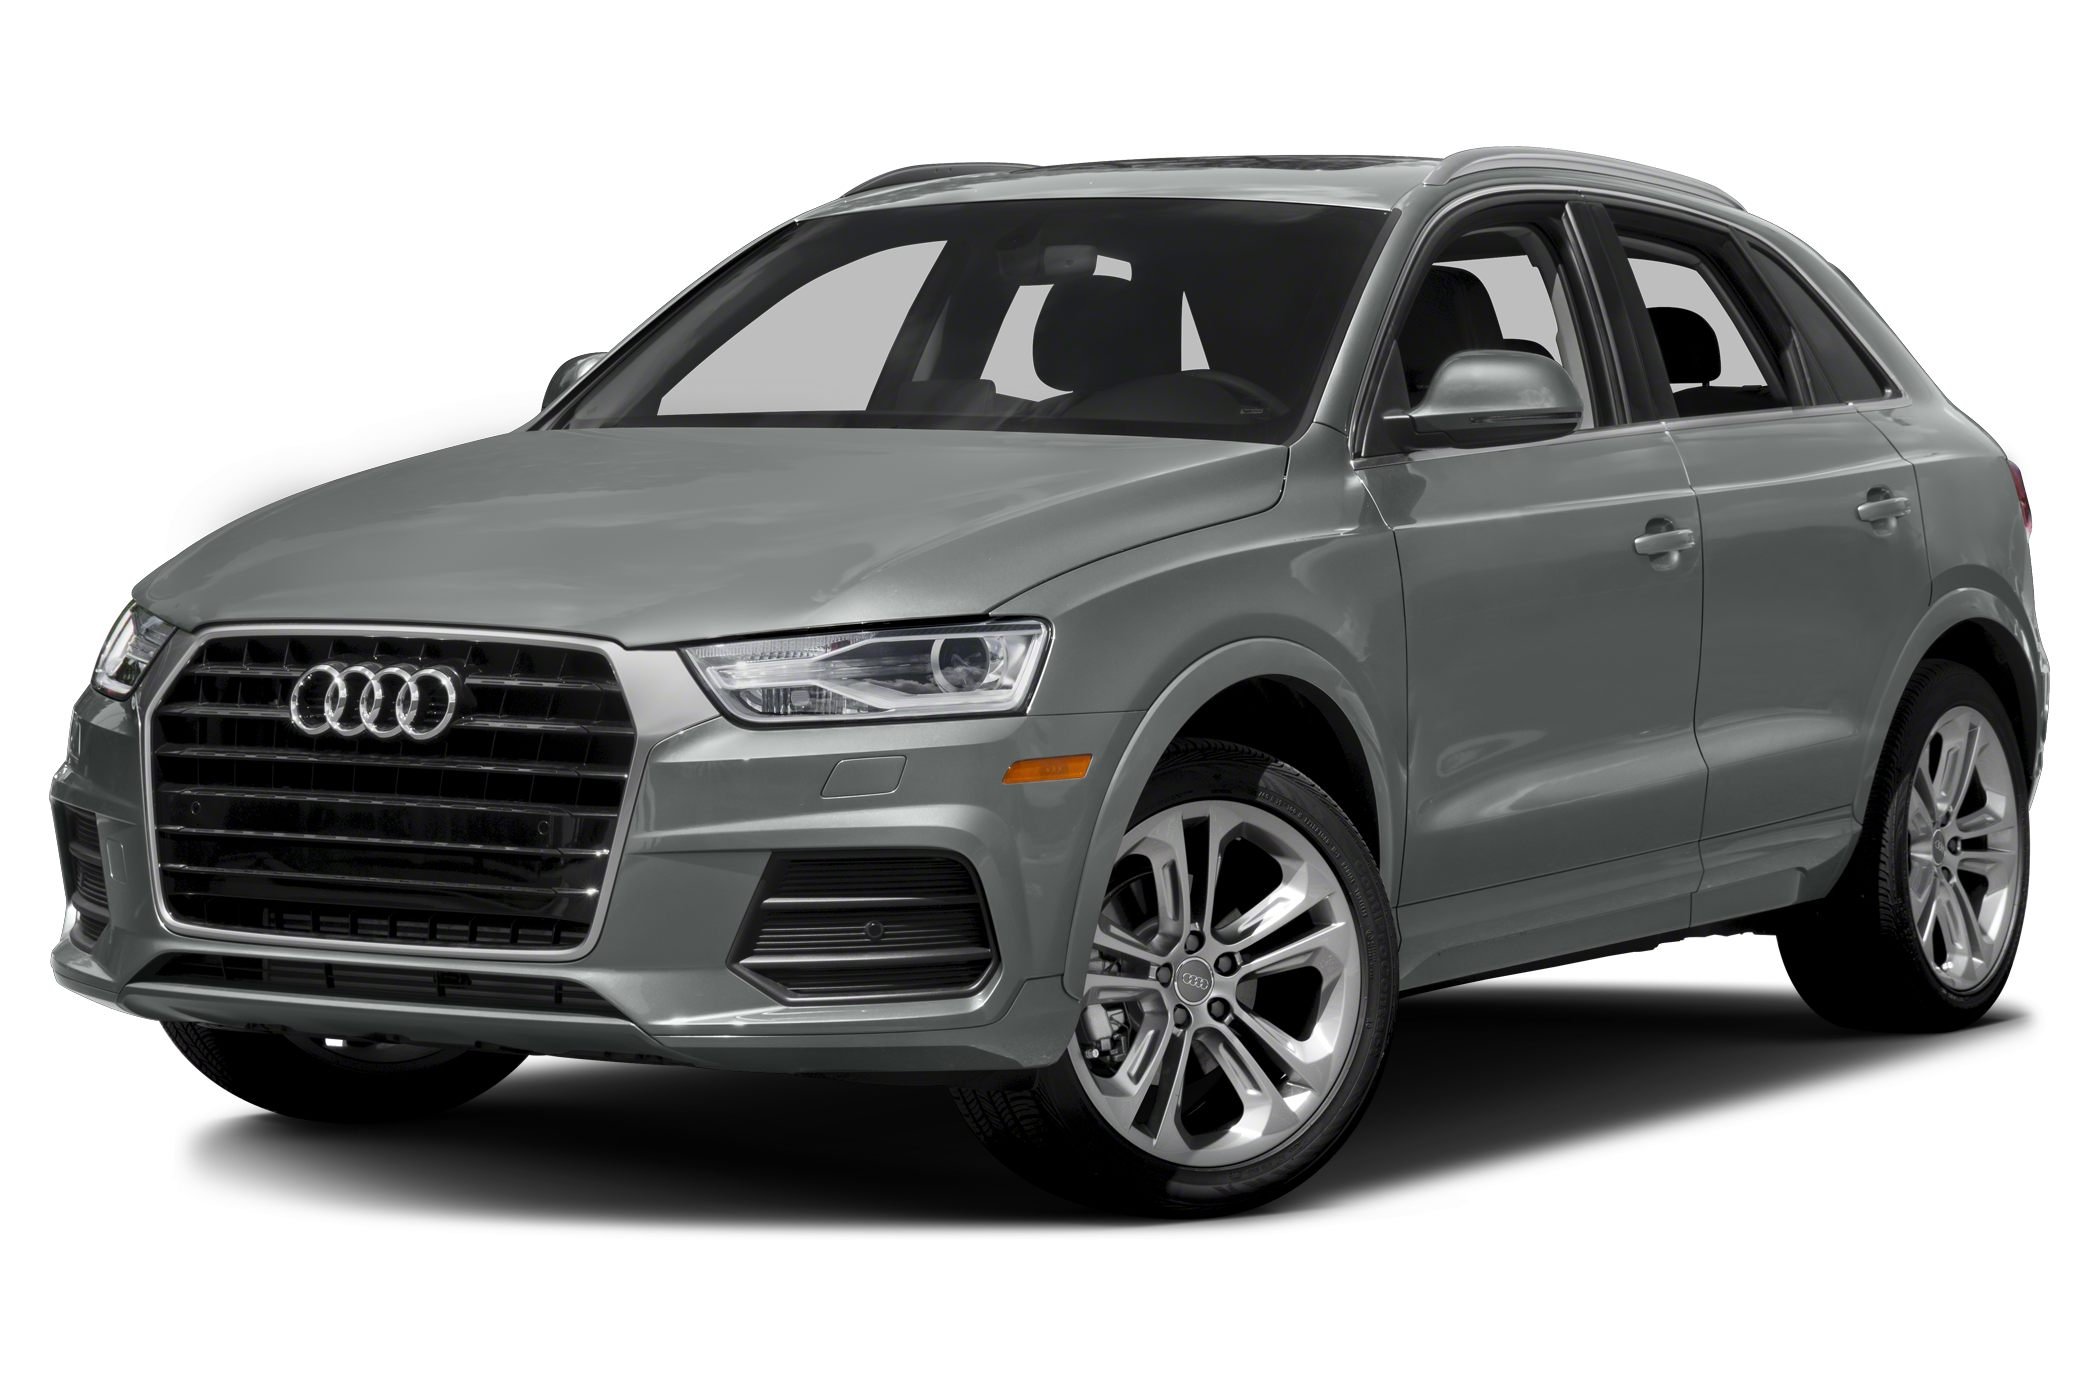 2018 Audi Q3 Reviews, Specs and Prices | Cars.com